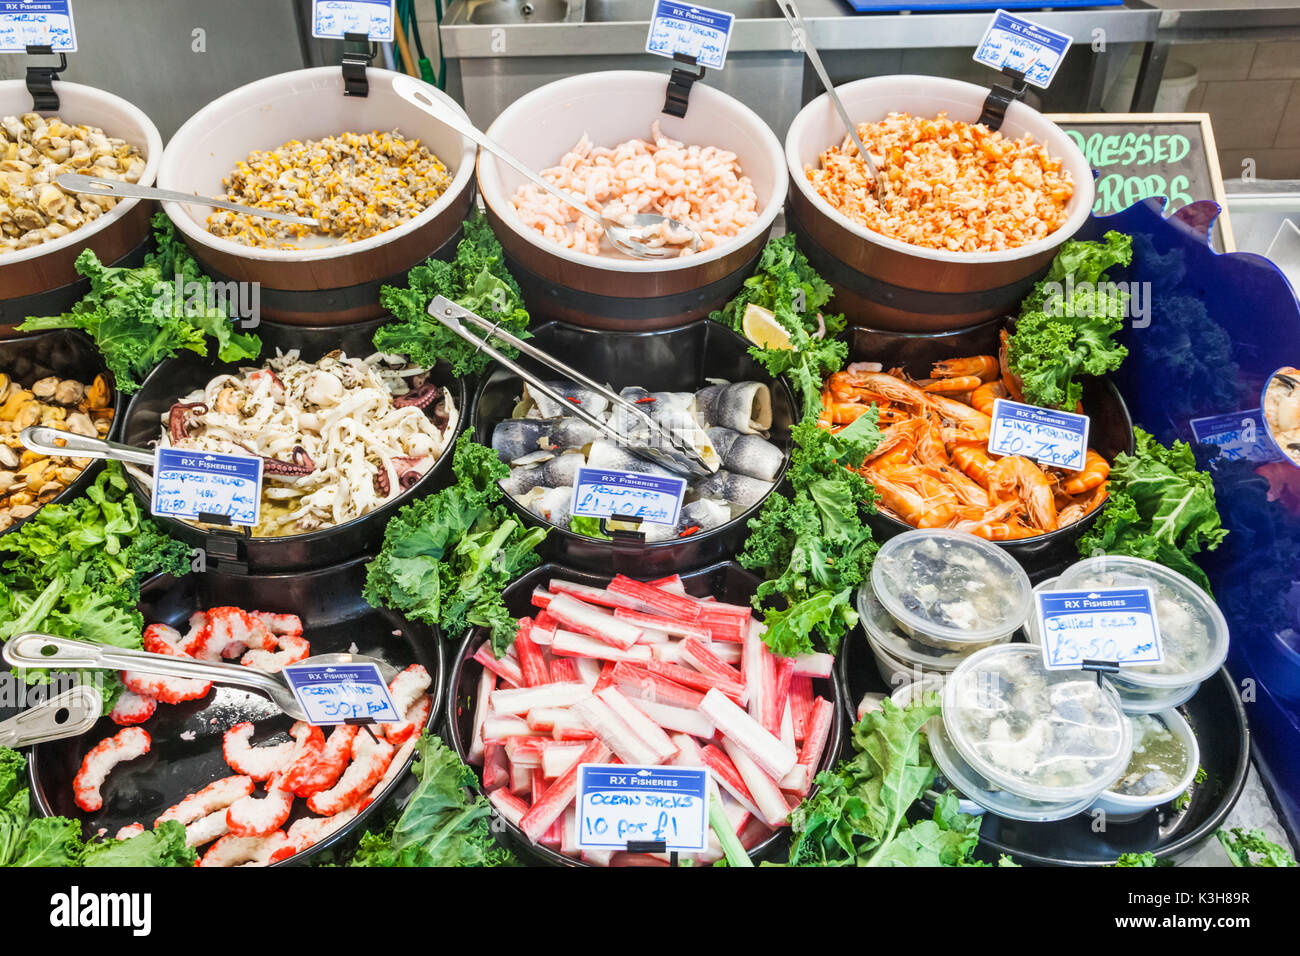 England, East Sussex, Hastings, Fish Shop Display of Seafood - Stock Image